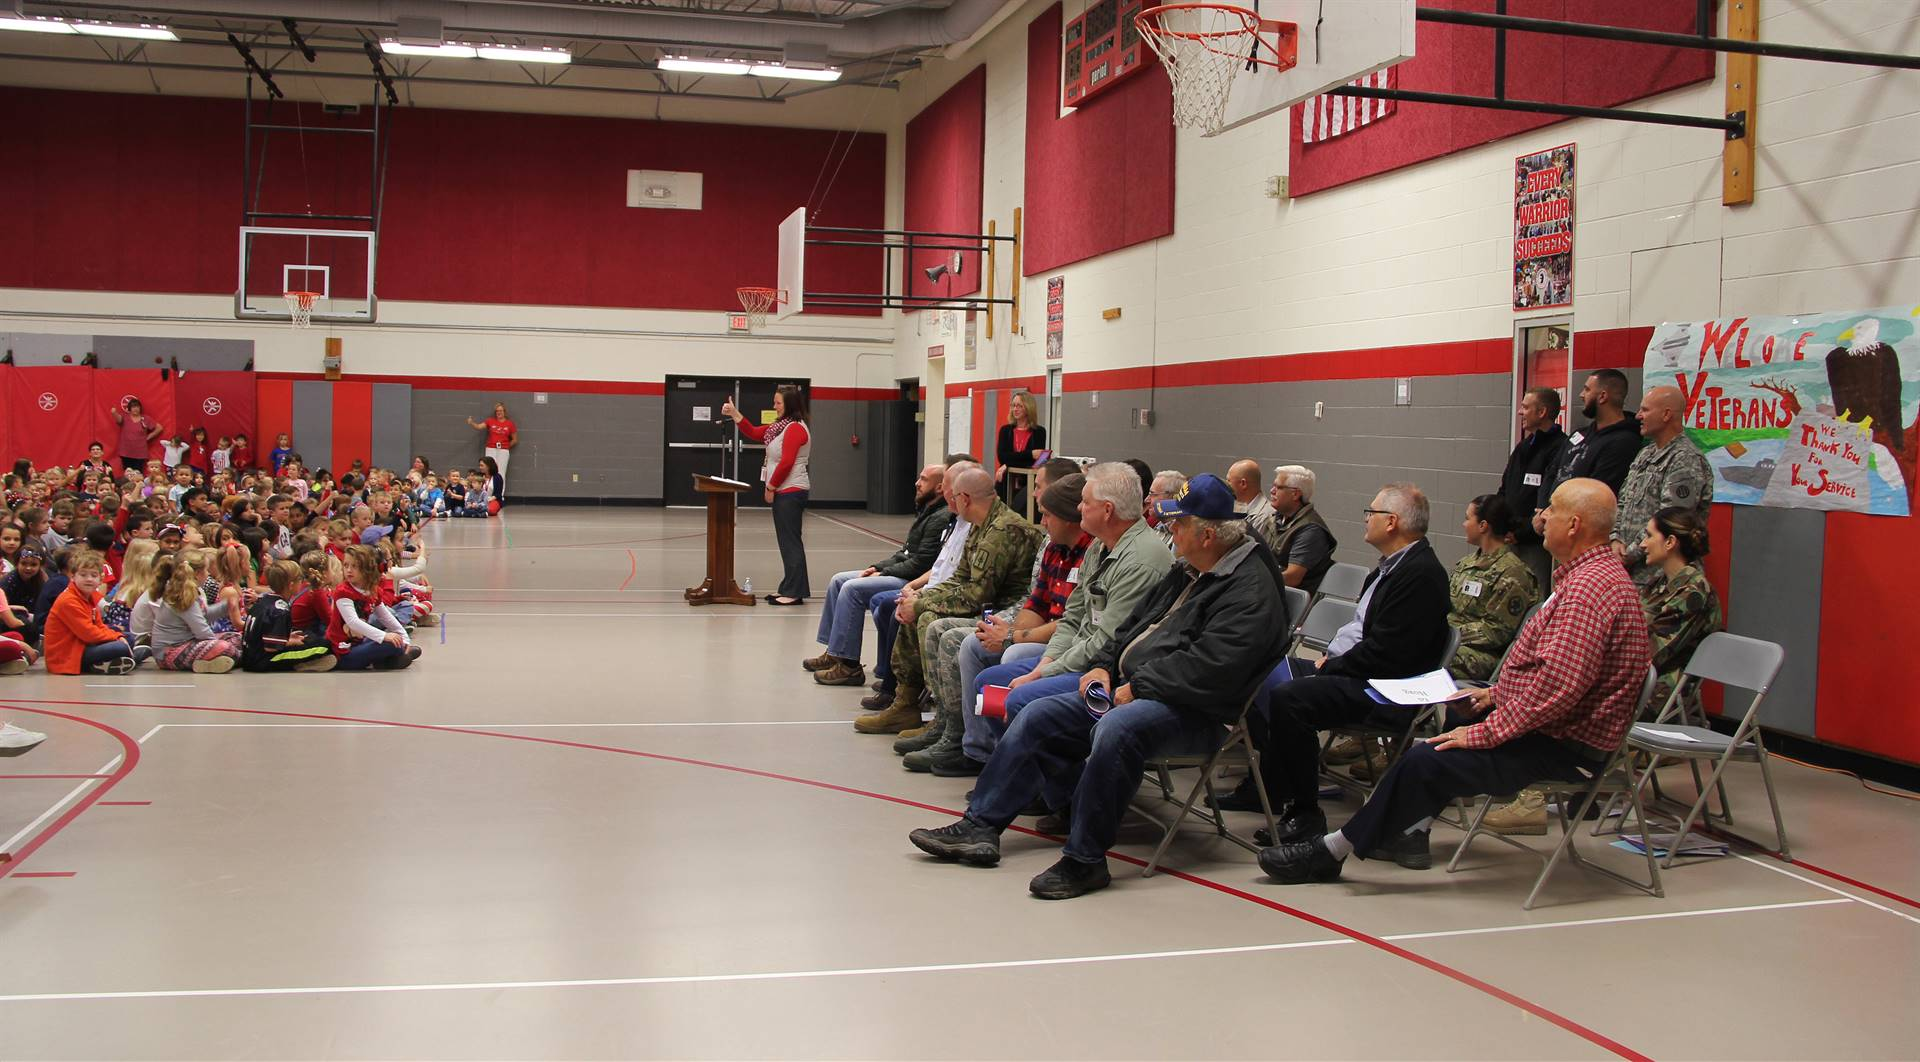 wide shot of gym with students and veterans